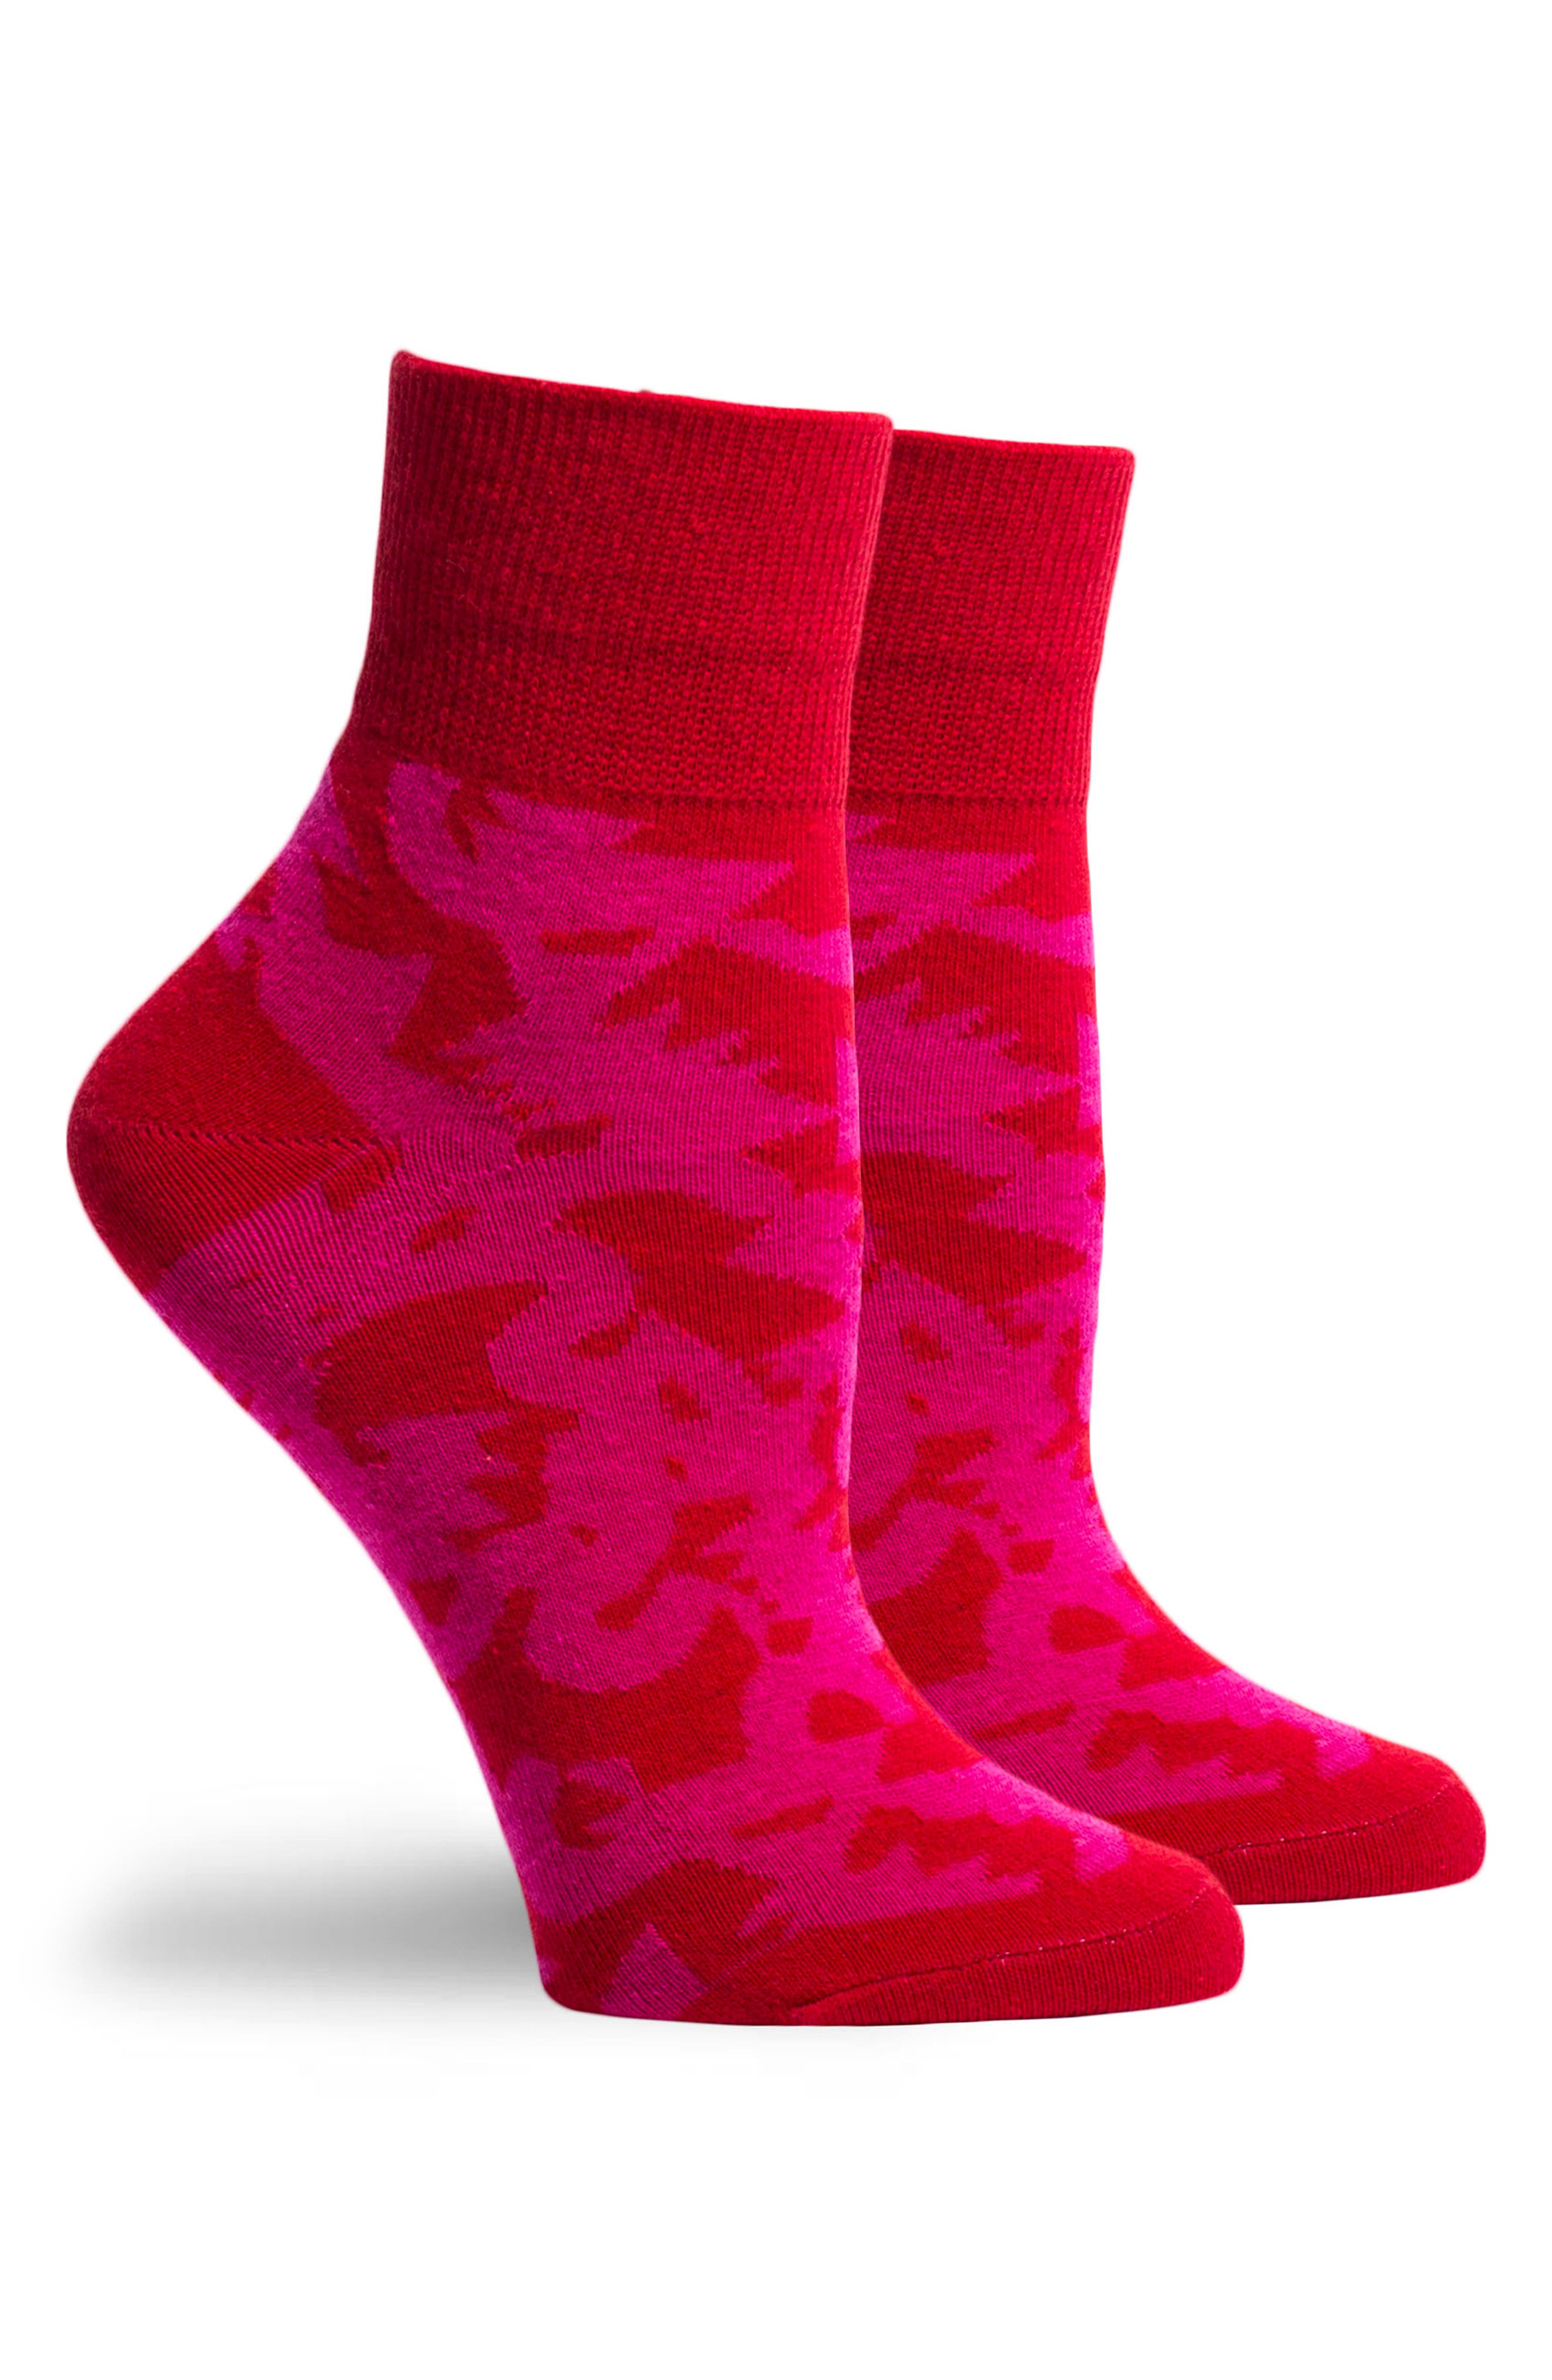 Abstract Will Bryant Socks,                             Alternate thumbnail 2, color,                             600